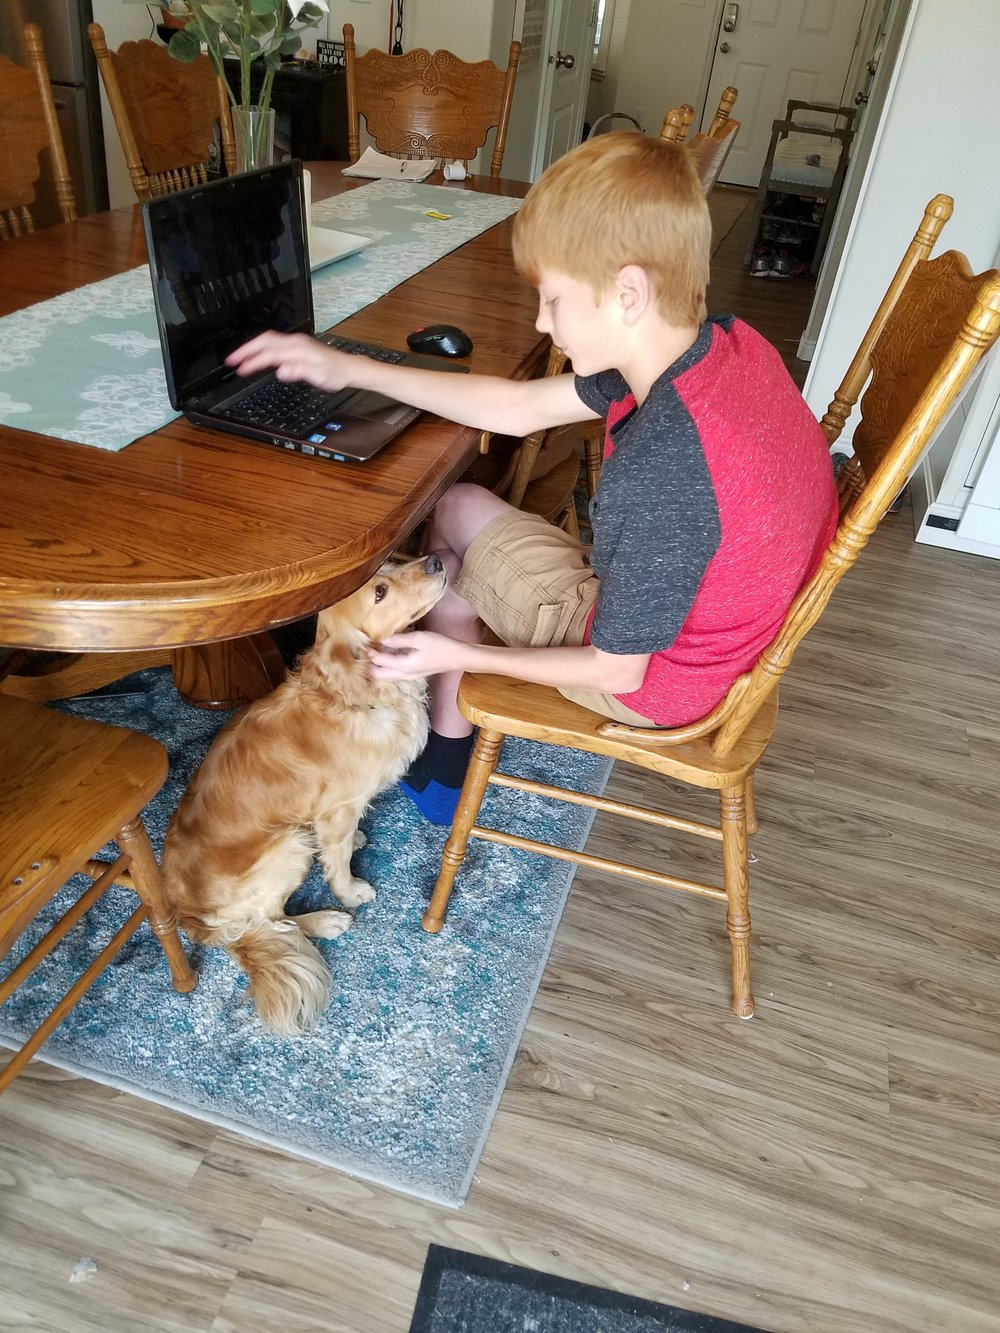 Here is Sullivan looking lovingly at my 13-year-old son. Sully, thank you for loving my children *almost* as much as I do, best dog ever! -